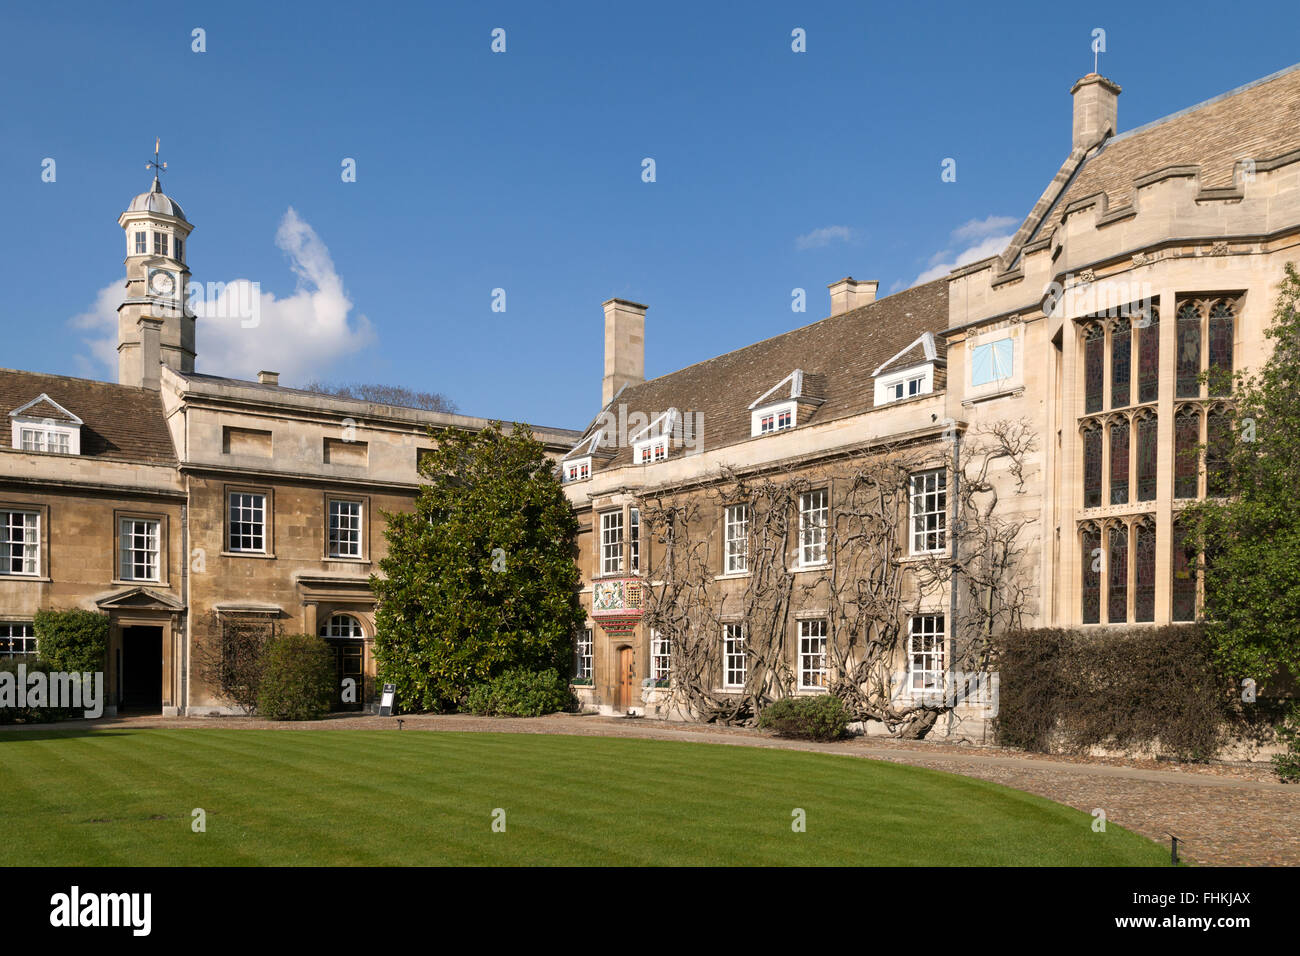 A view in the Entrance Court, Christs College Cambridge University, Cambridge UK - Stock Image